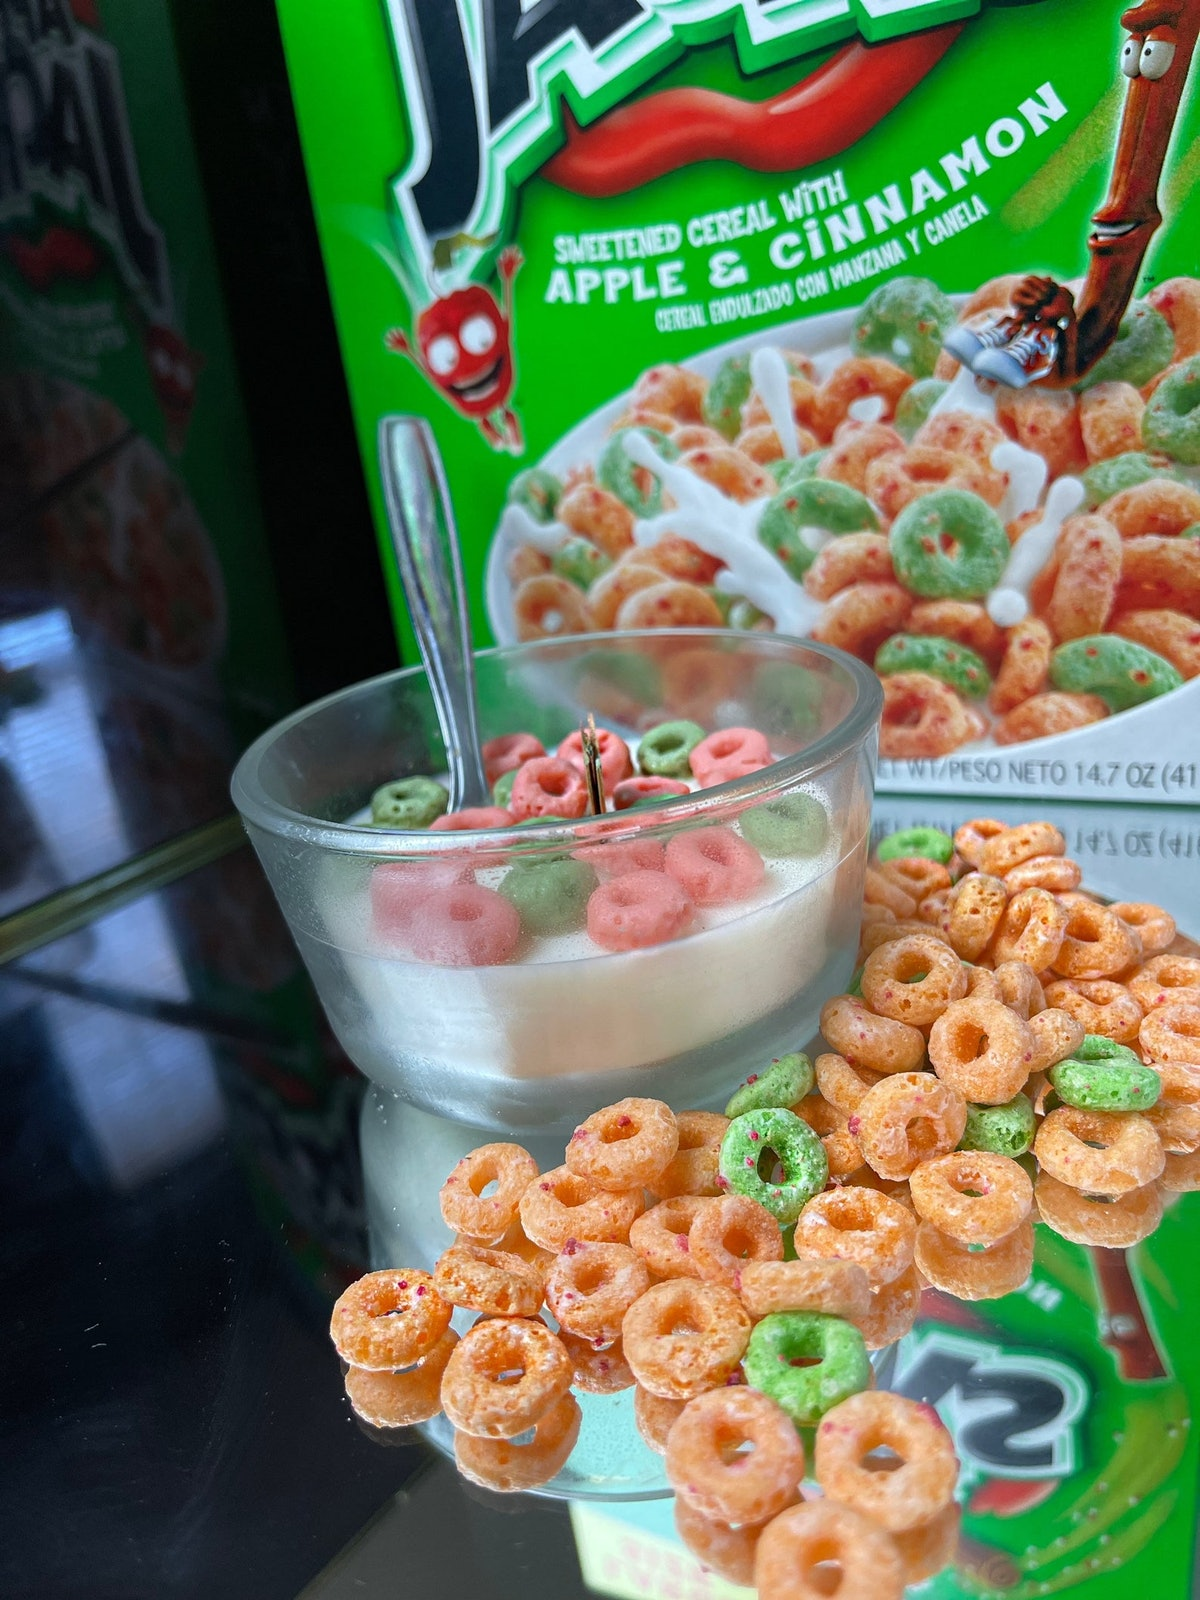 Cereal Bowl Candle